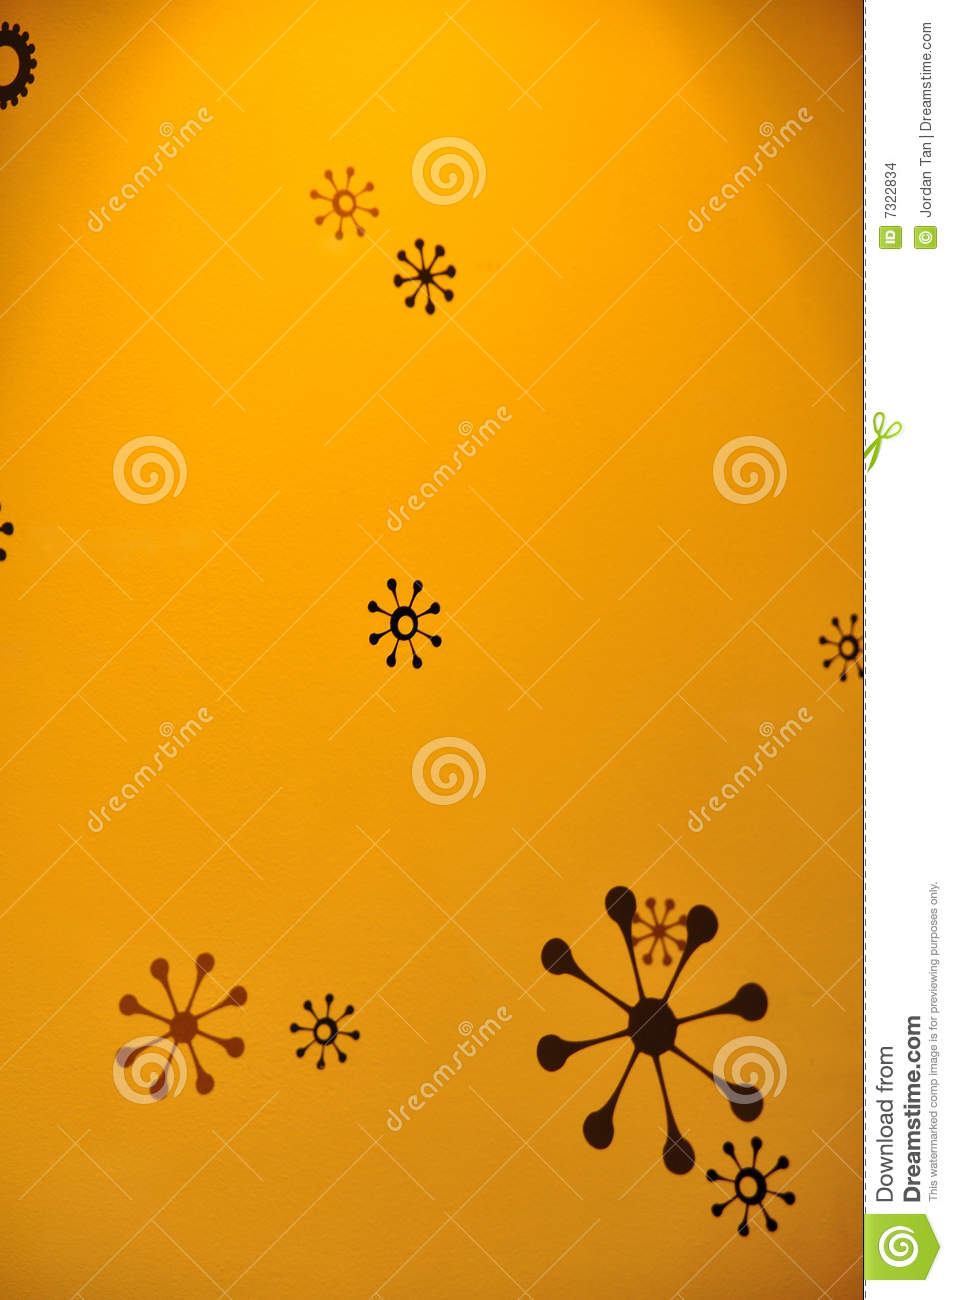 Star designs on yellow background